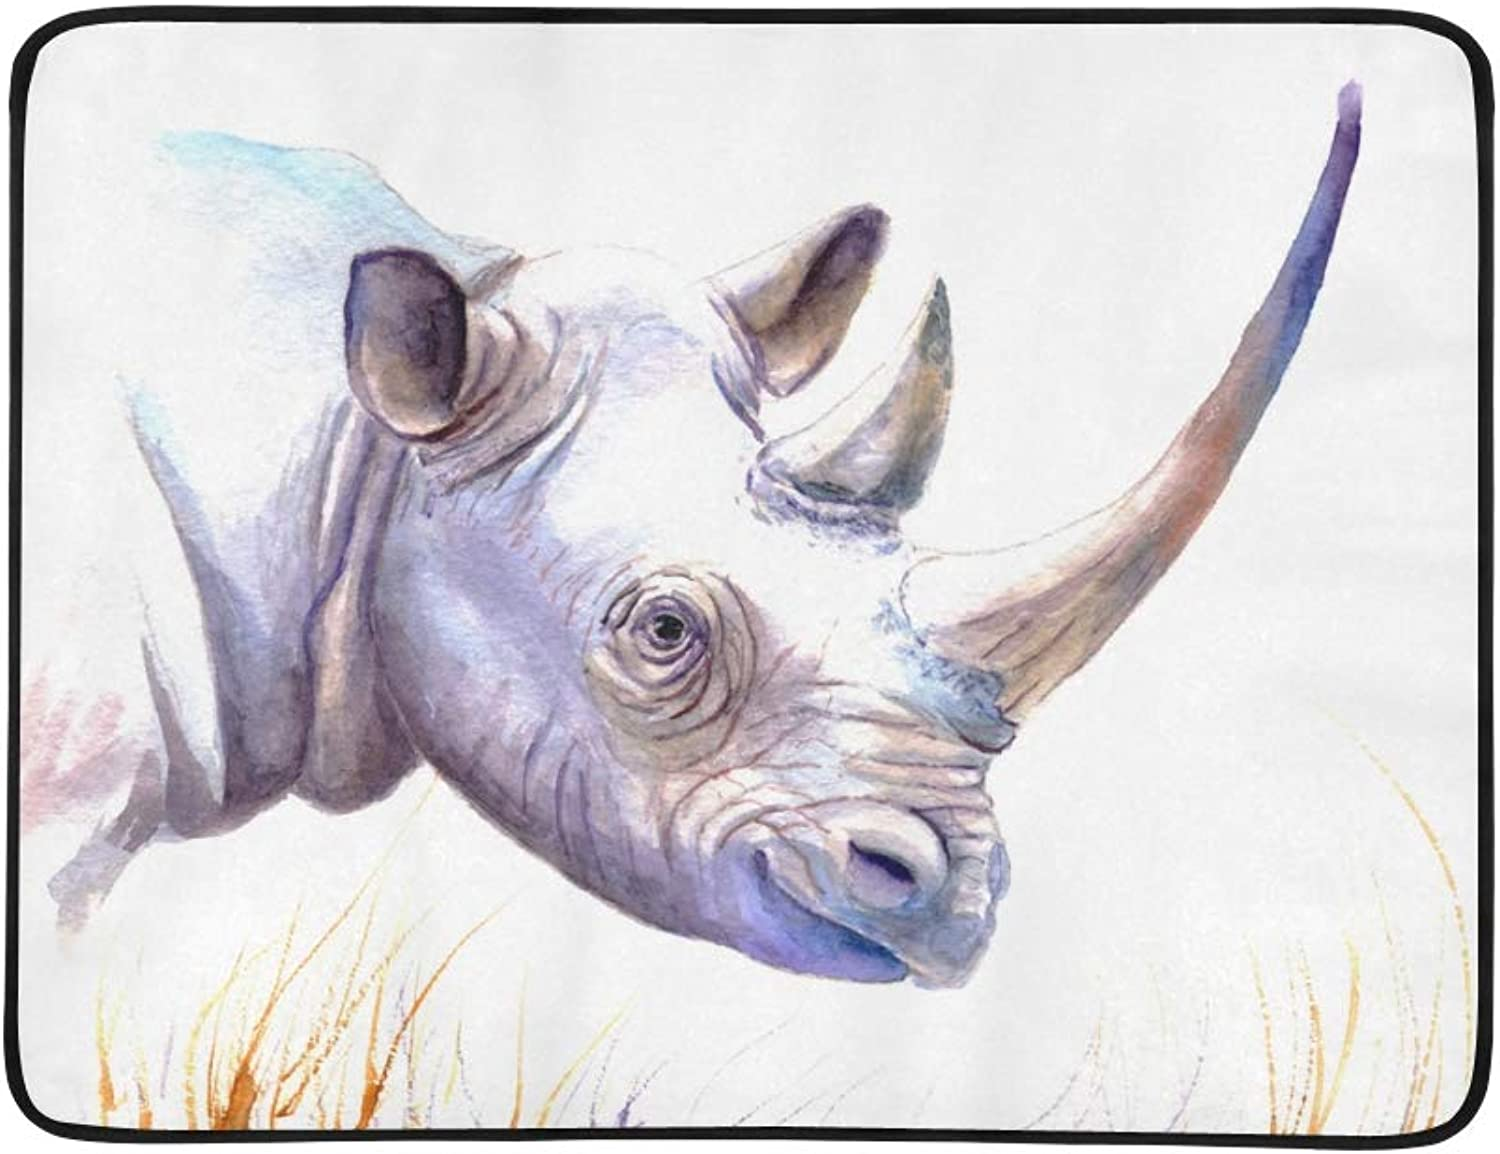 Rhinoceros Grazing On The Grassland Pattern Portable and Foldable Blanket Mat 60x78 Inch Handy Mat for Camping Picnic Beach Indoor Outdoor Travel